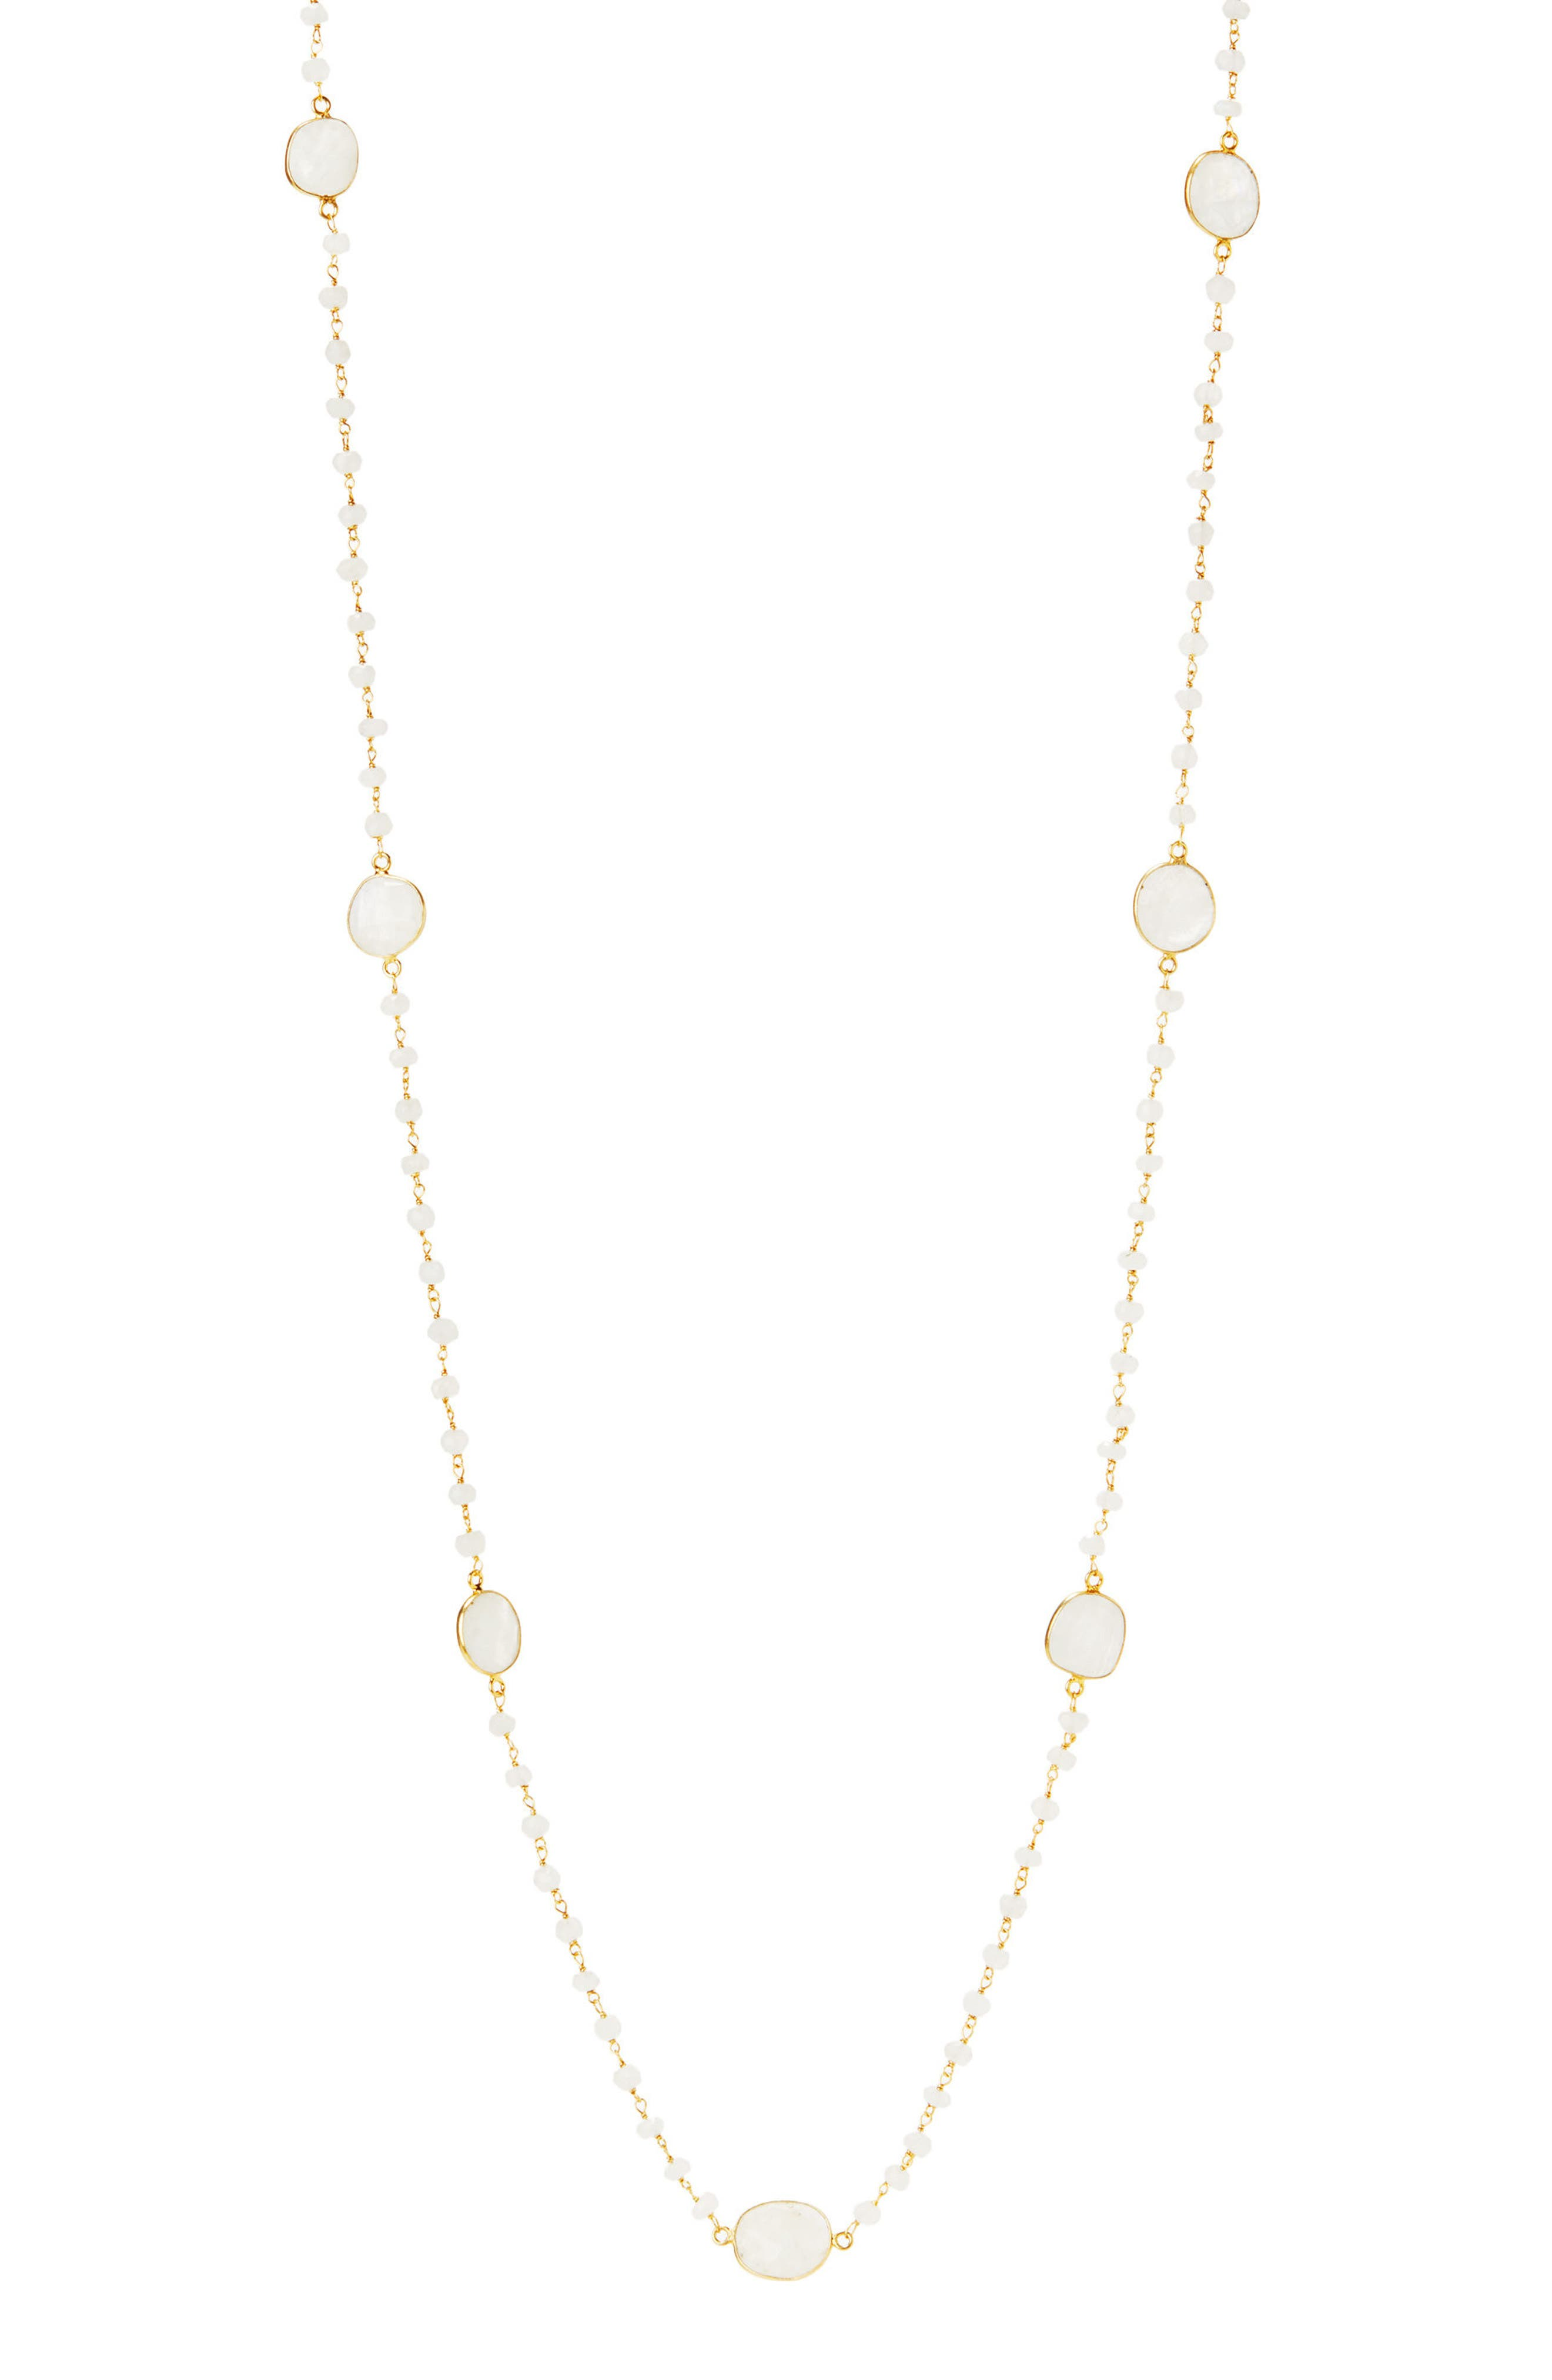 Neivs Station Necklace,                             Main thumbnail 1, color,                             Moonstone